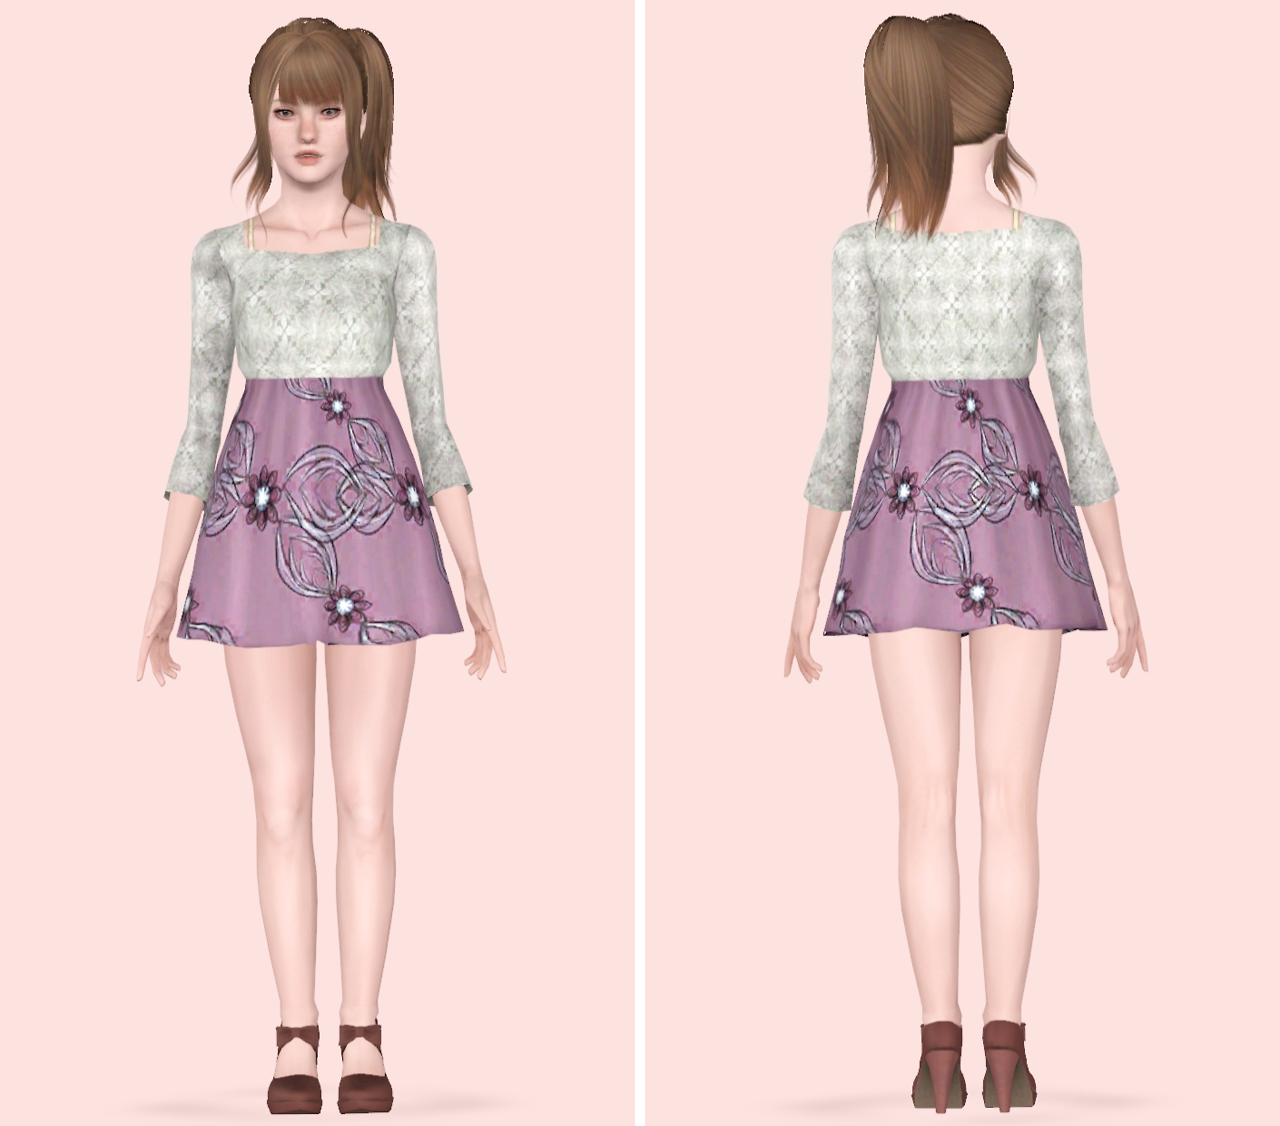 My Sims 3 Blog: Clothing Converted For Teen Females By